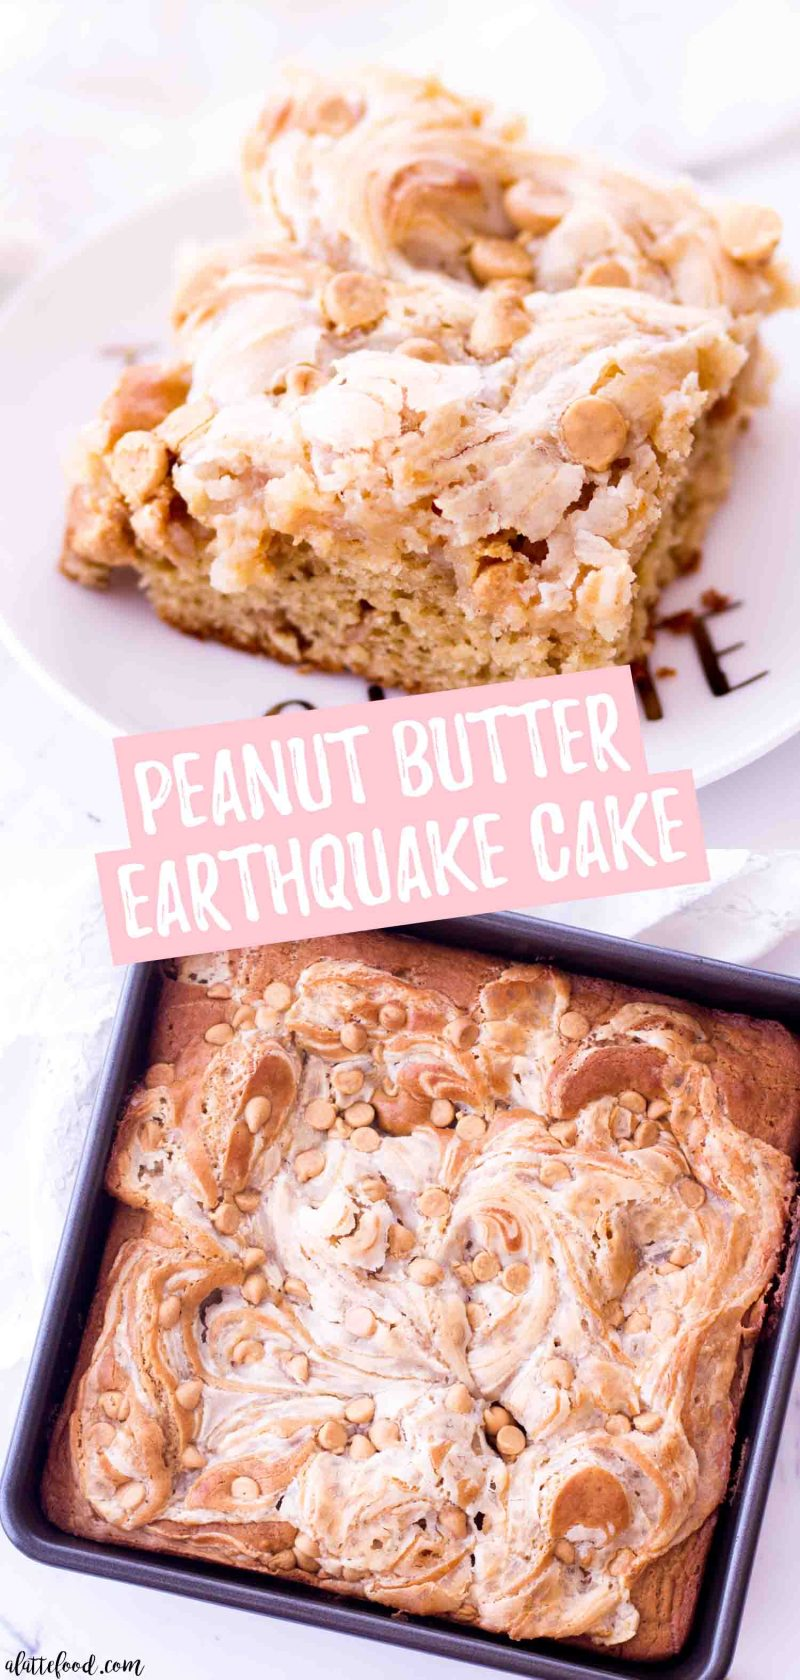 Rich peanut butter earthquake cake with swirls of cream cheese filling and peanut butter chips